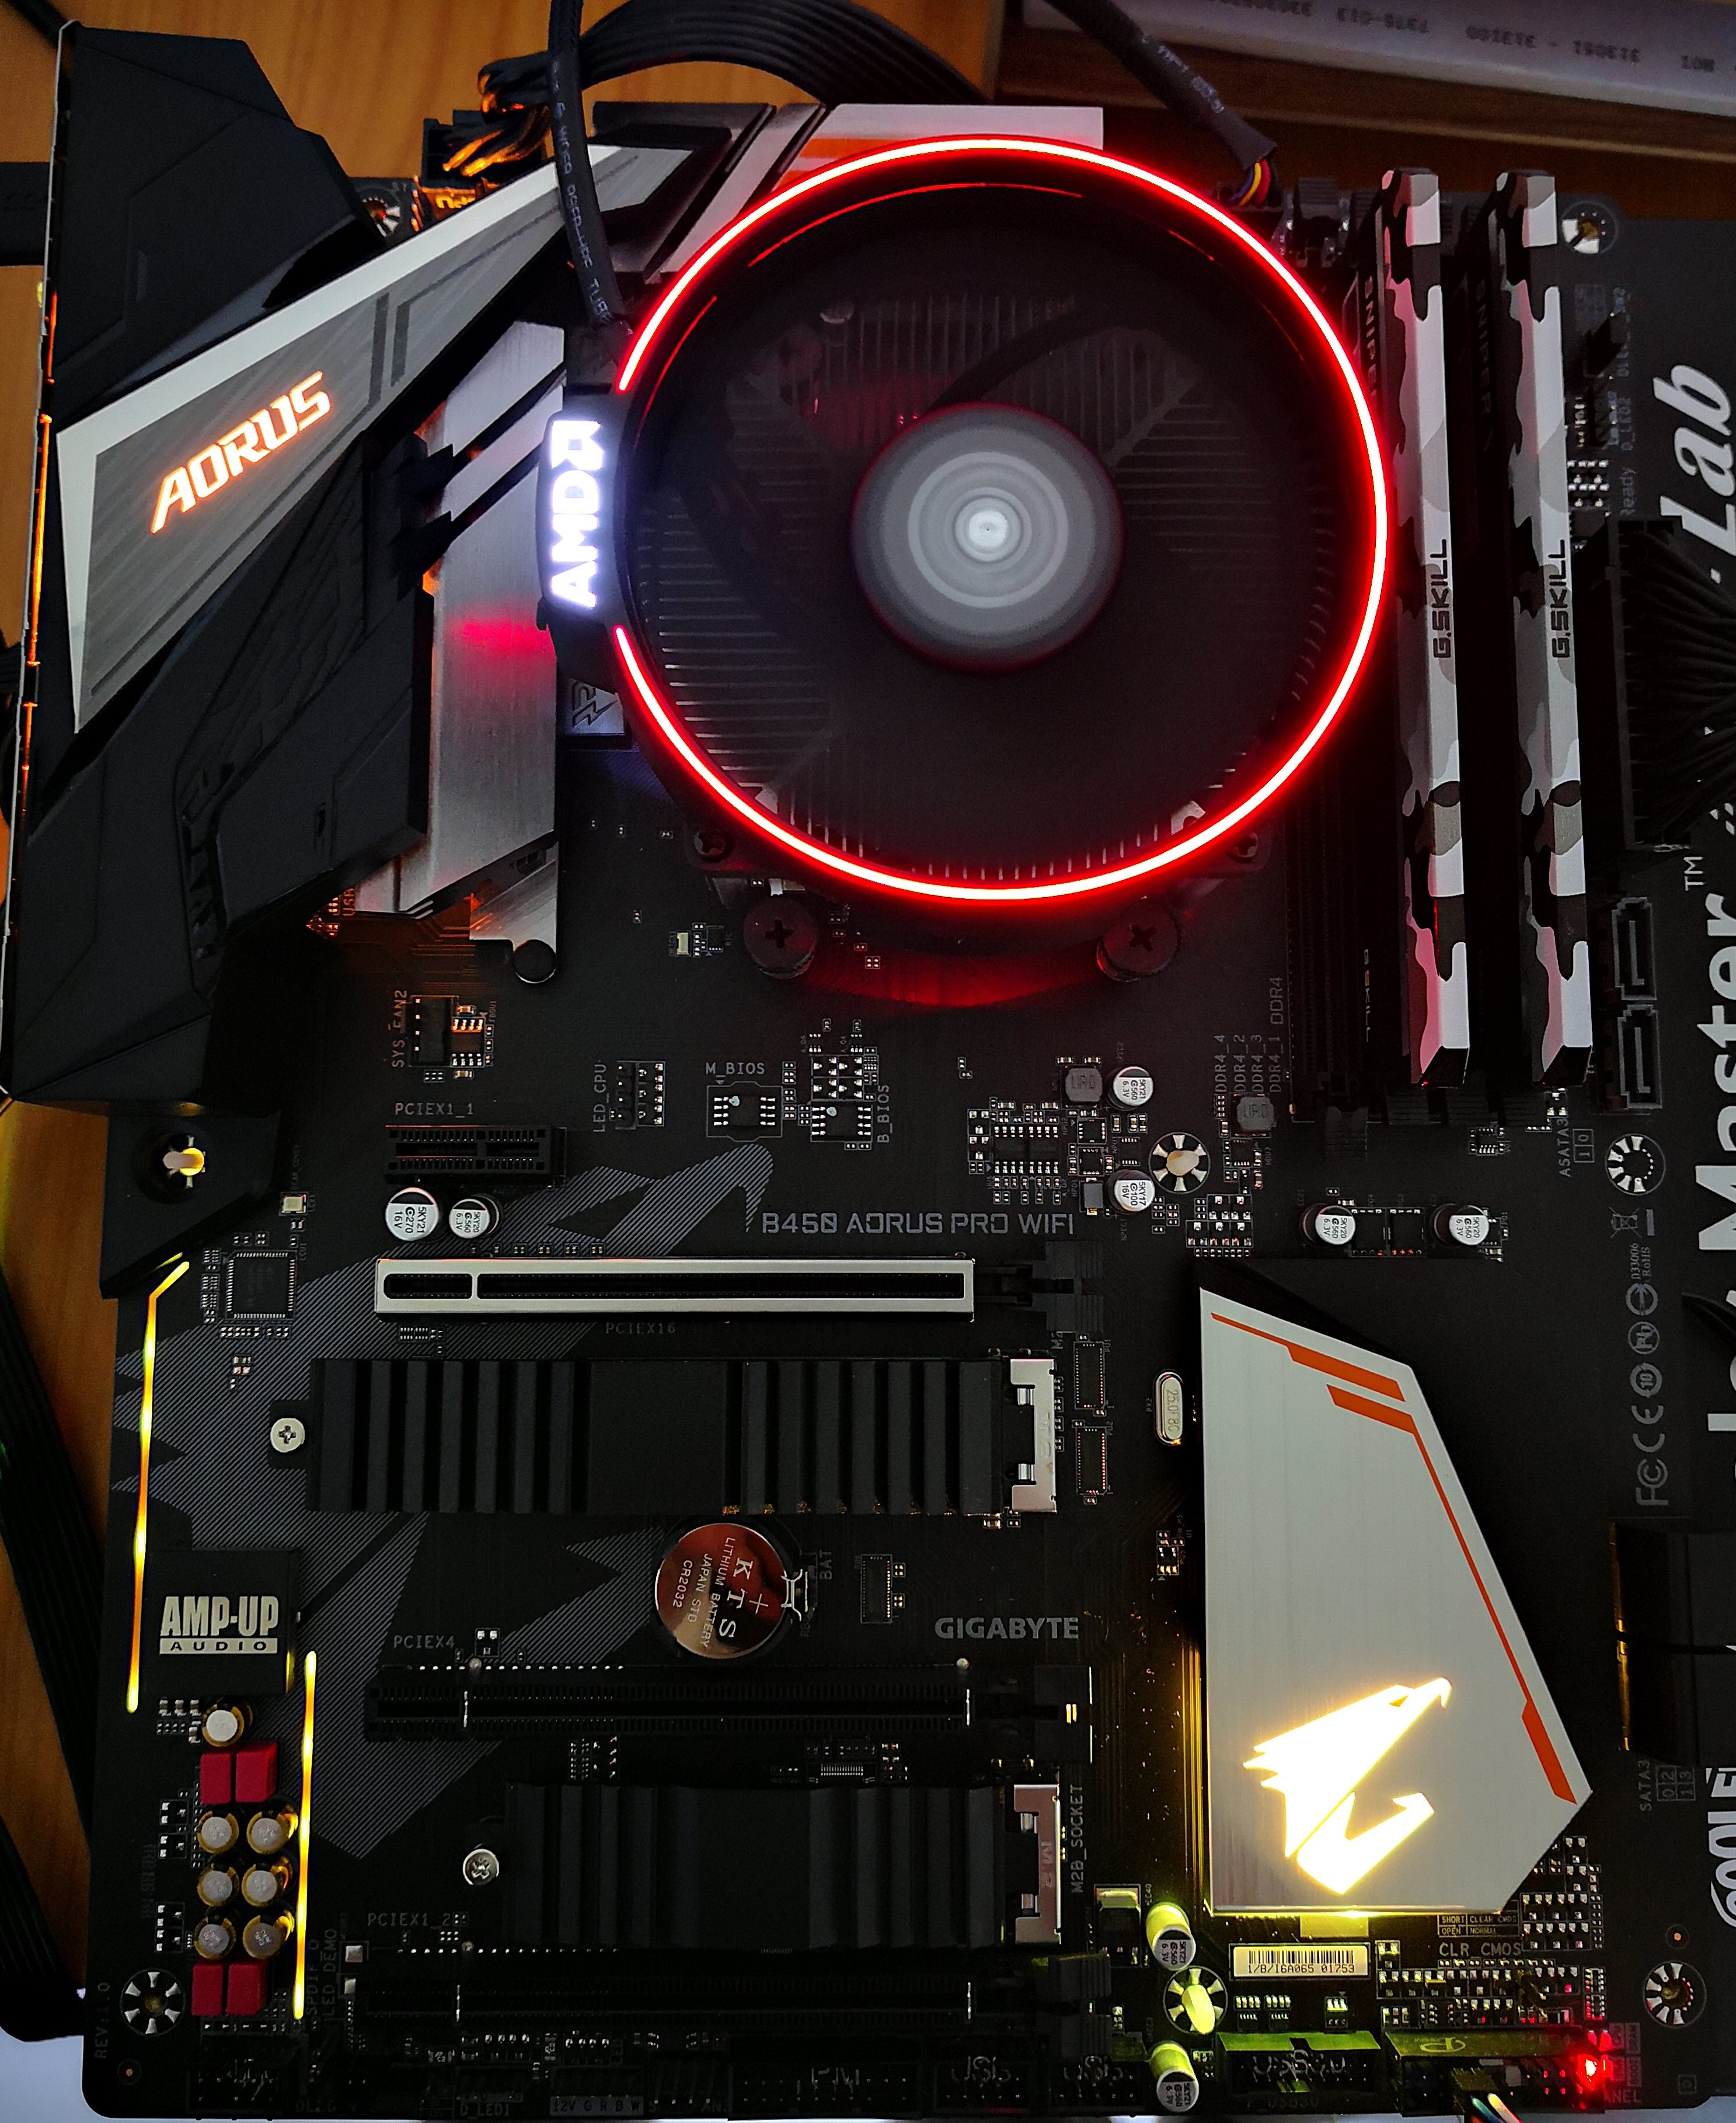 Gigabyte B450 AORUS PRO WIFI Review - Performance and Overclocking